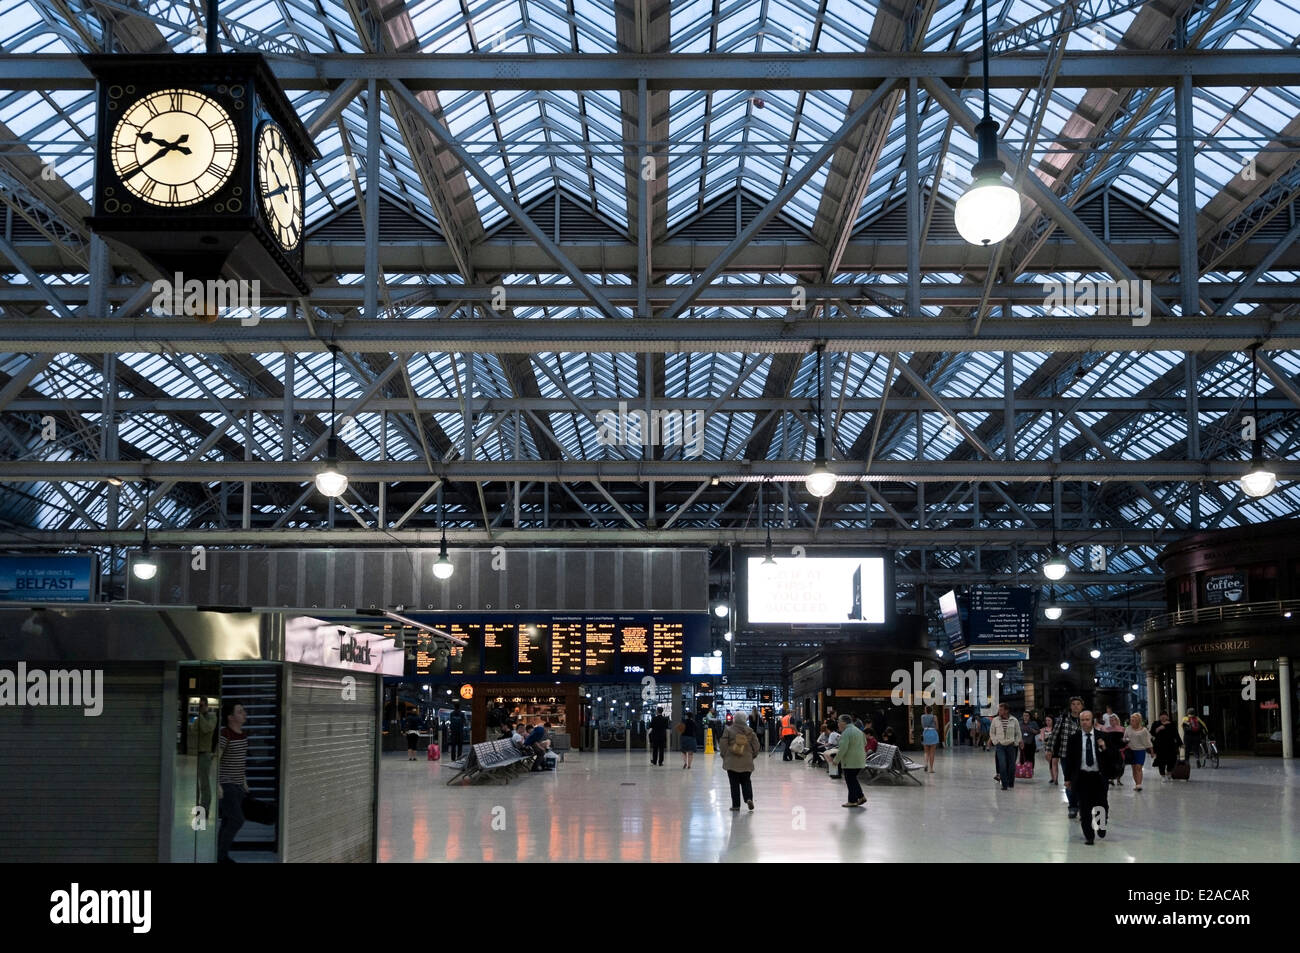 United Kingdom, Scotland, Glasgow, central district of Merchant City, Central Station - Stock Image